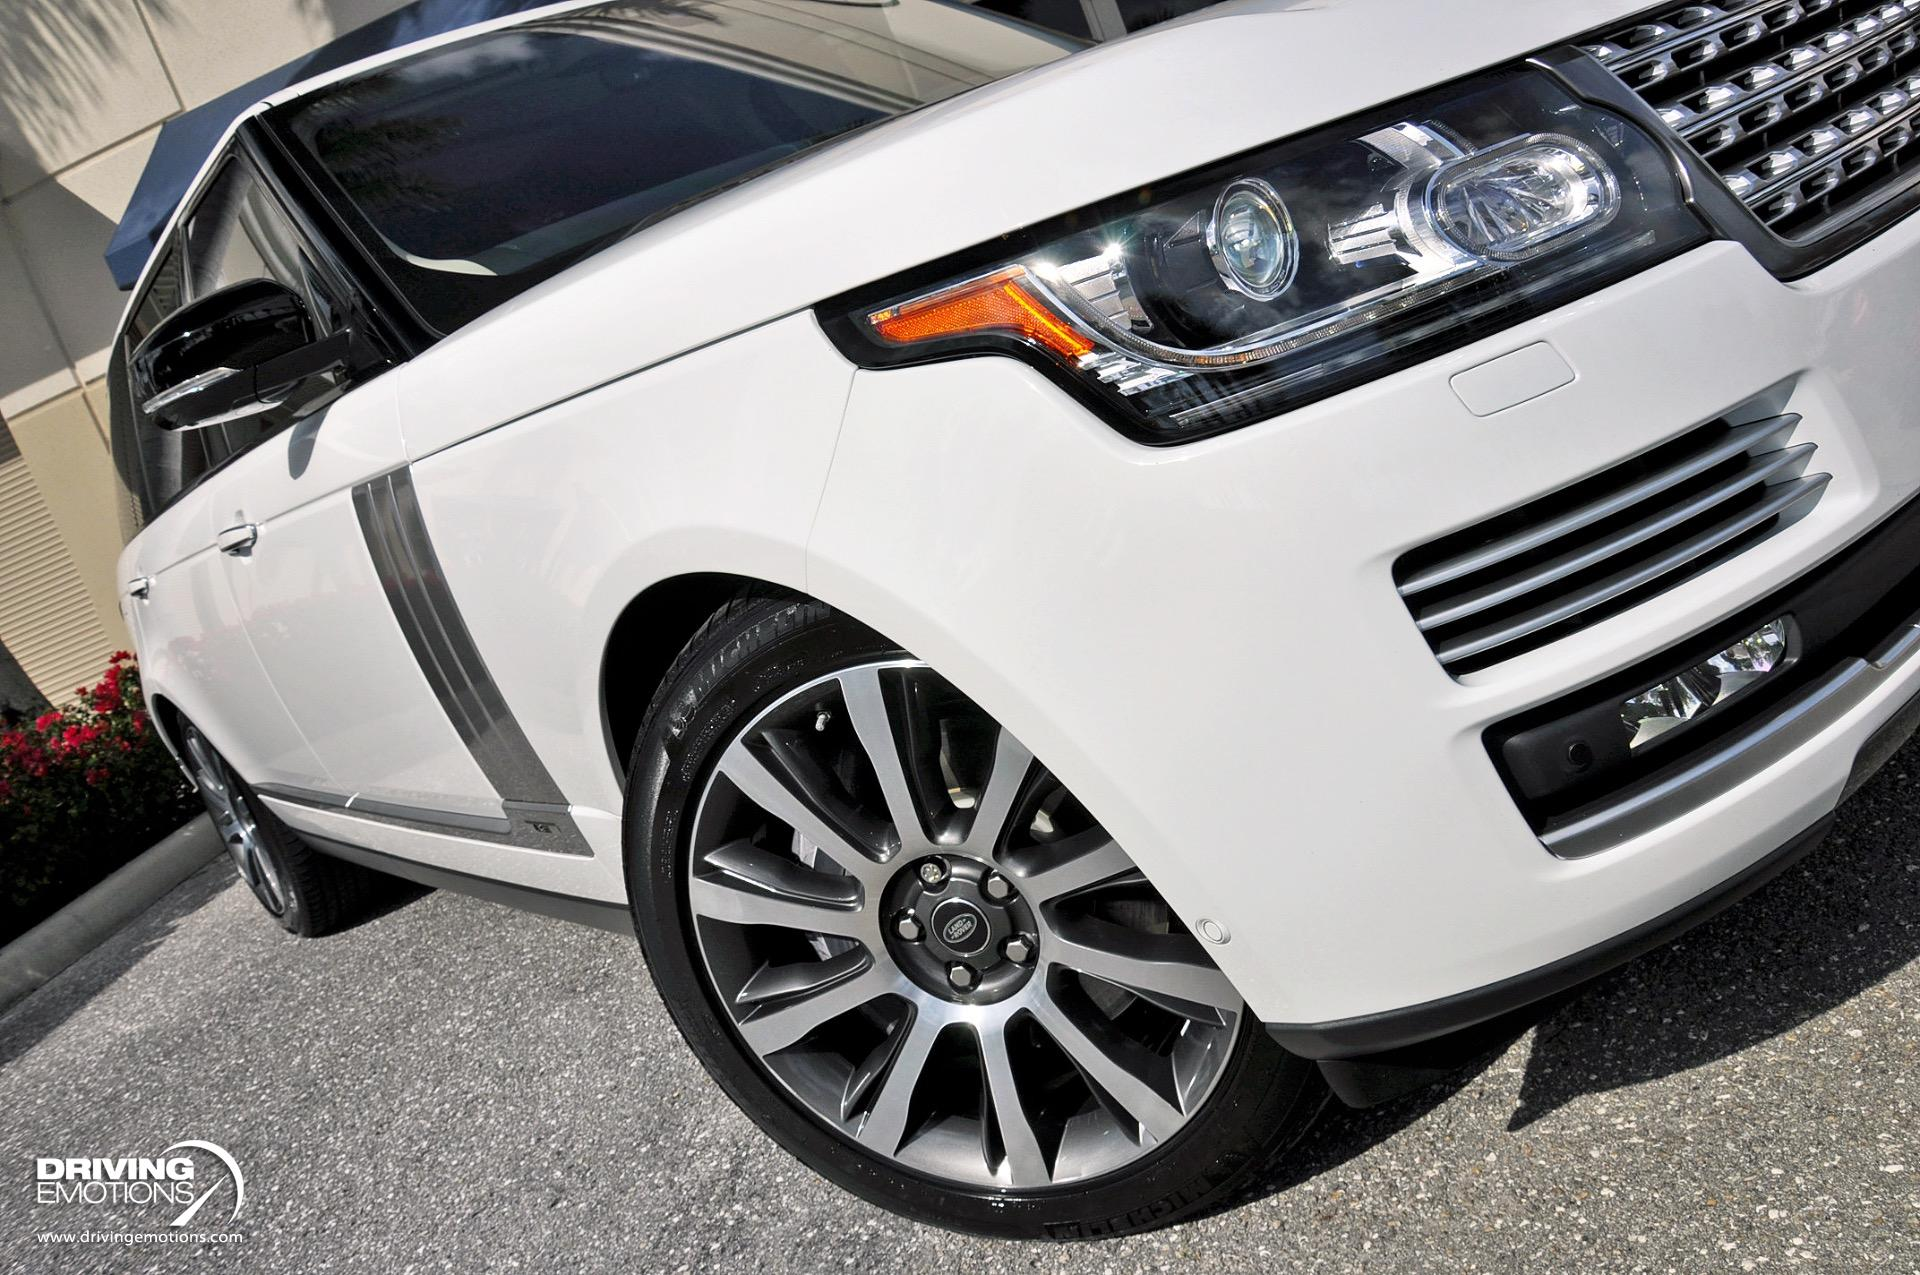 Used 2017 Land Rover Range Rover Autobiography LWB Autobiography LWB $149K MSRP!! | Lake Park, FL